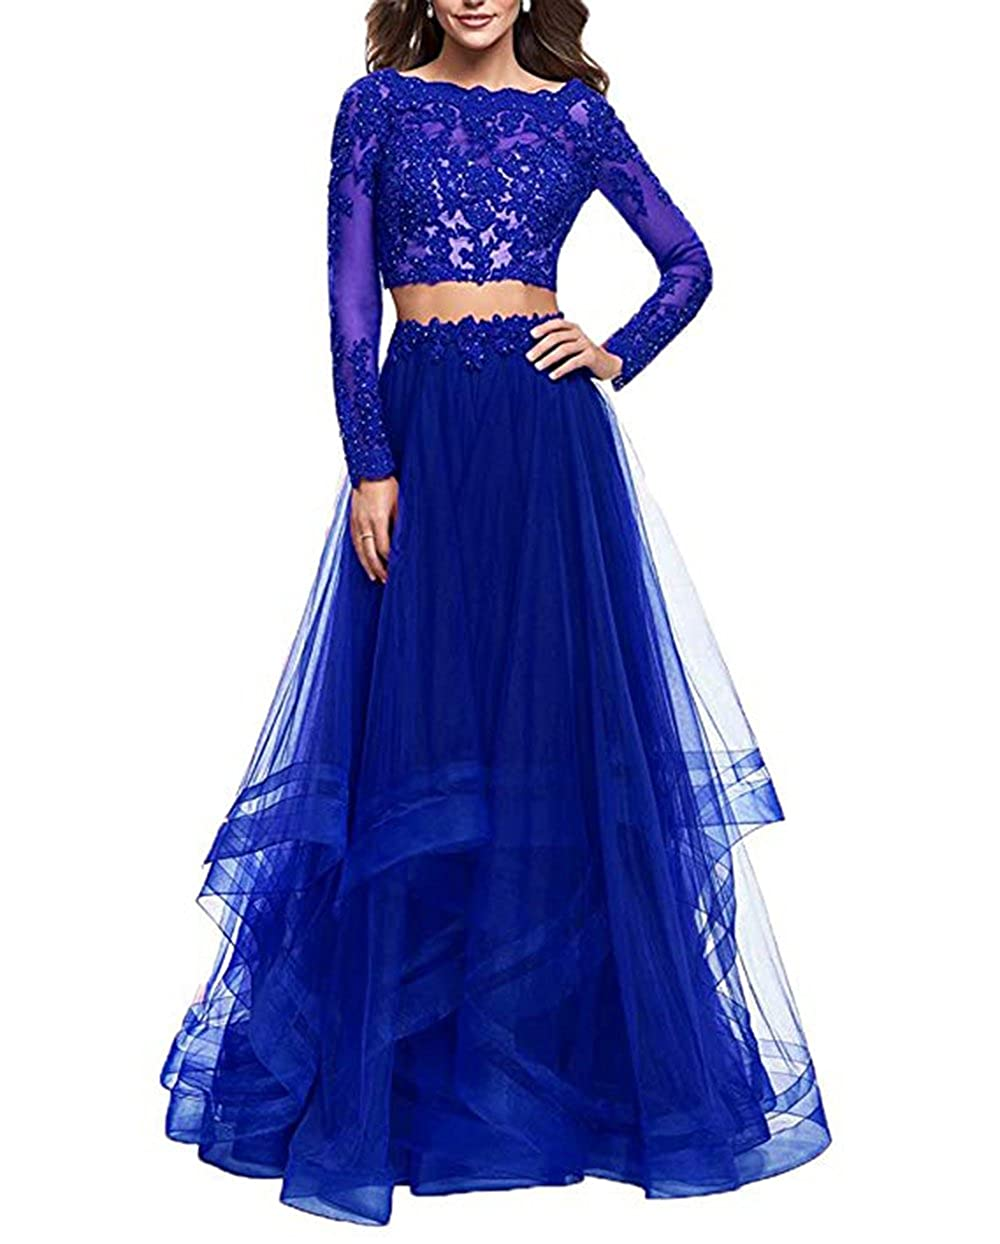 Royal bluee alilith.Z Sexy Illusion Appliques Tulle 2 Piece Prom Dresses Long Formal Evening Party Gowns for Women with Sleeves